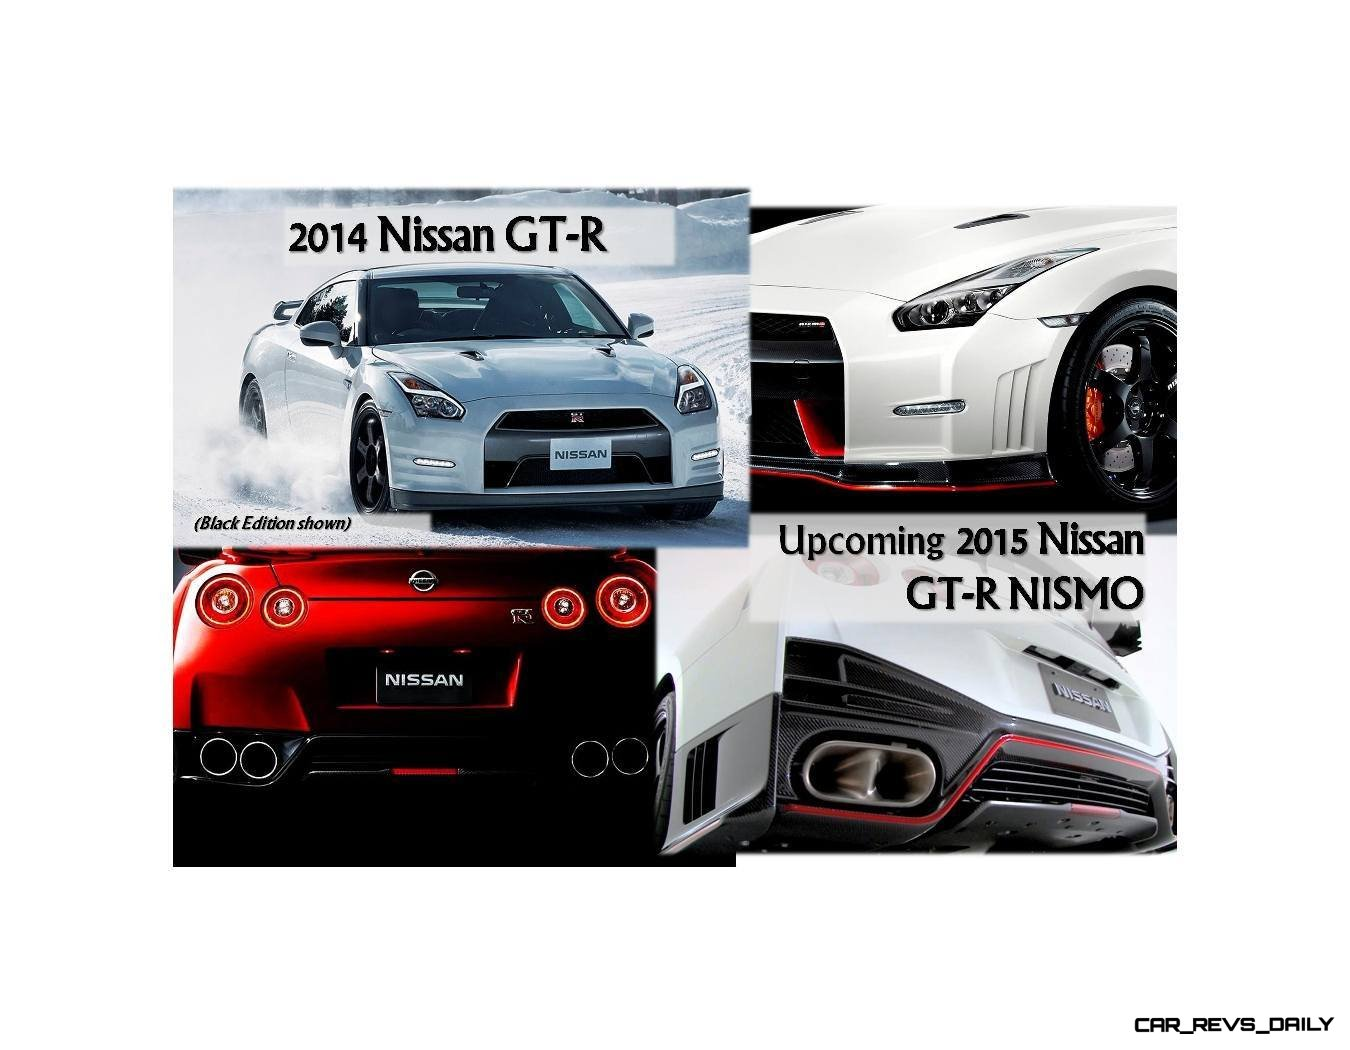 CarRevsDaily---GT-R-Updates-Guide-Header-Image888888888